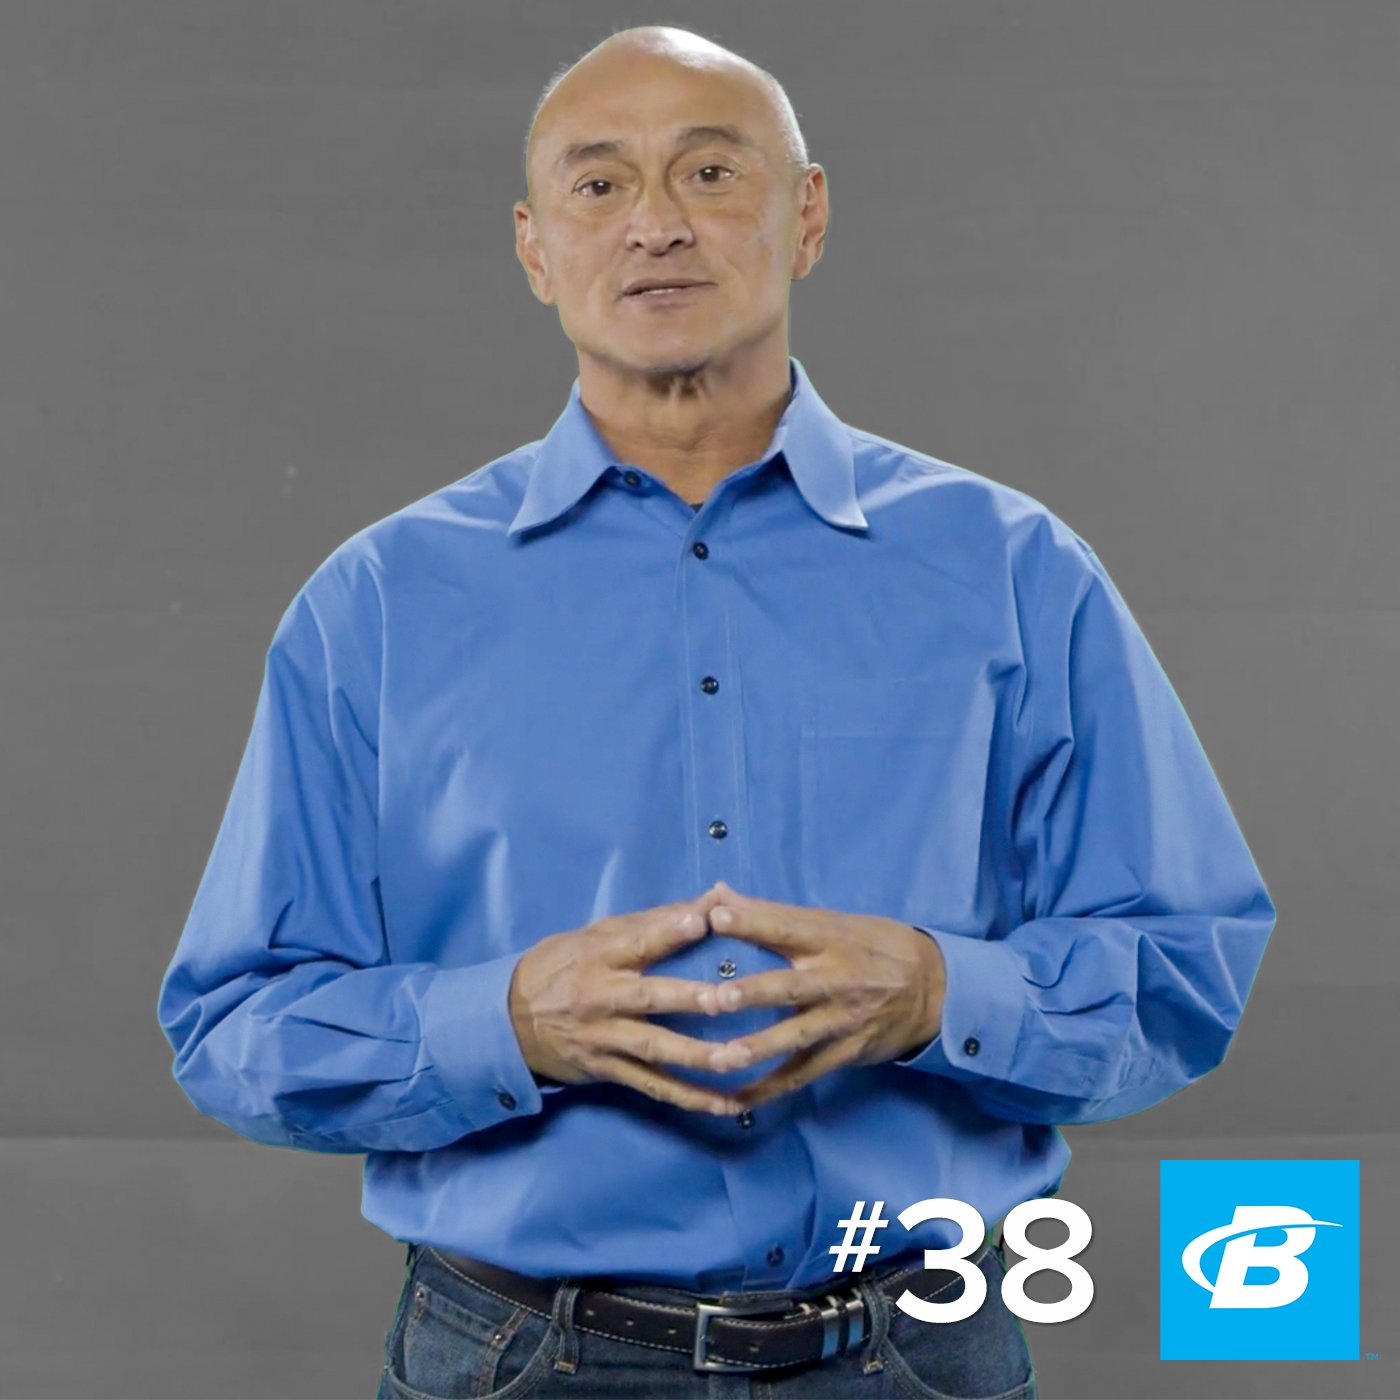 Ep. 38: Straight talk on Protein and more with Dr. Jose Antonio